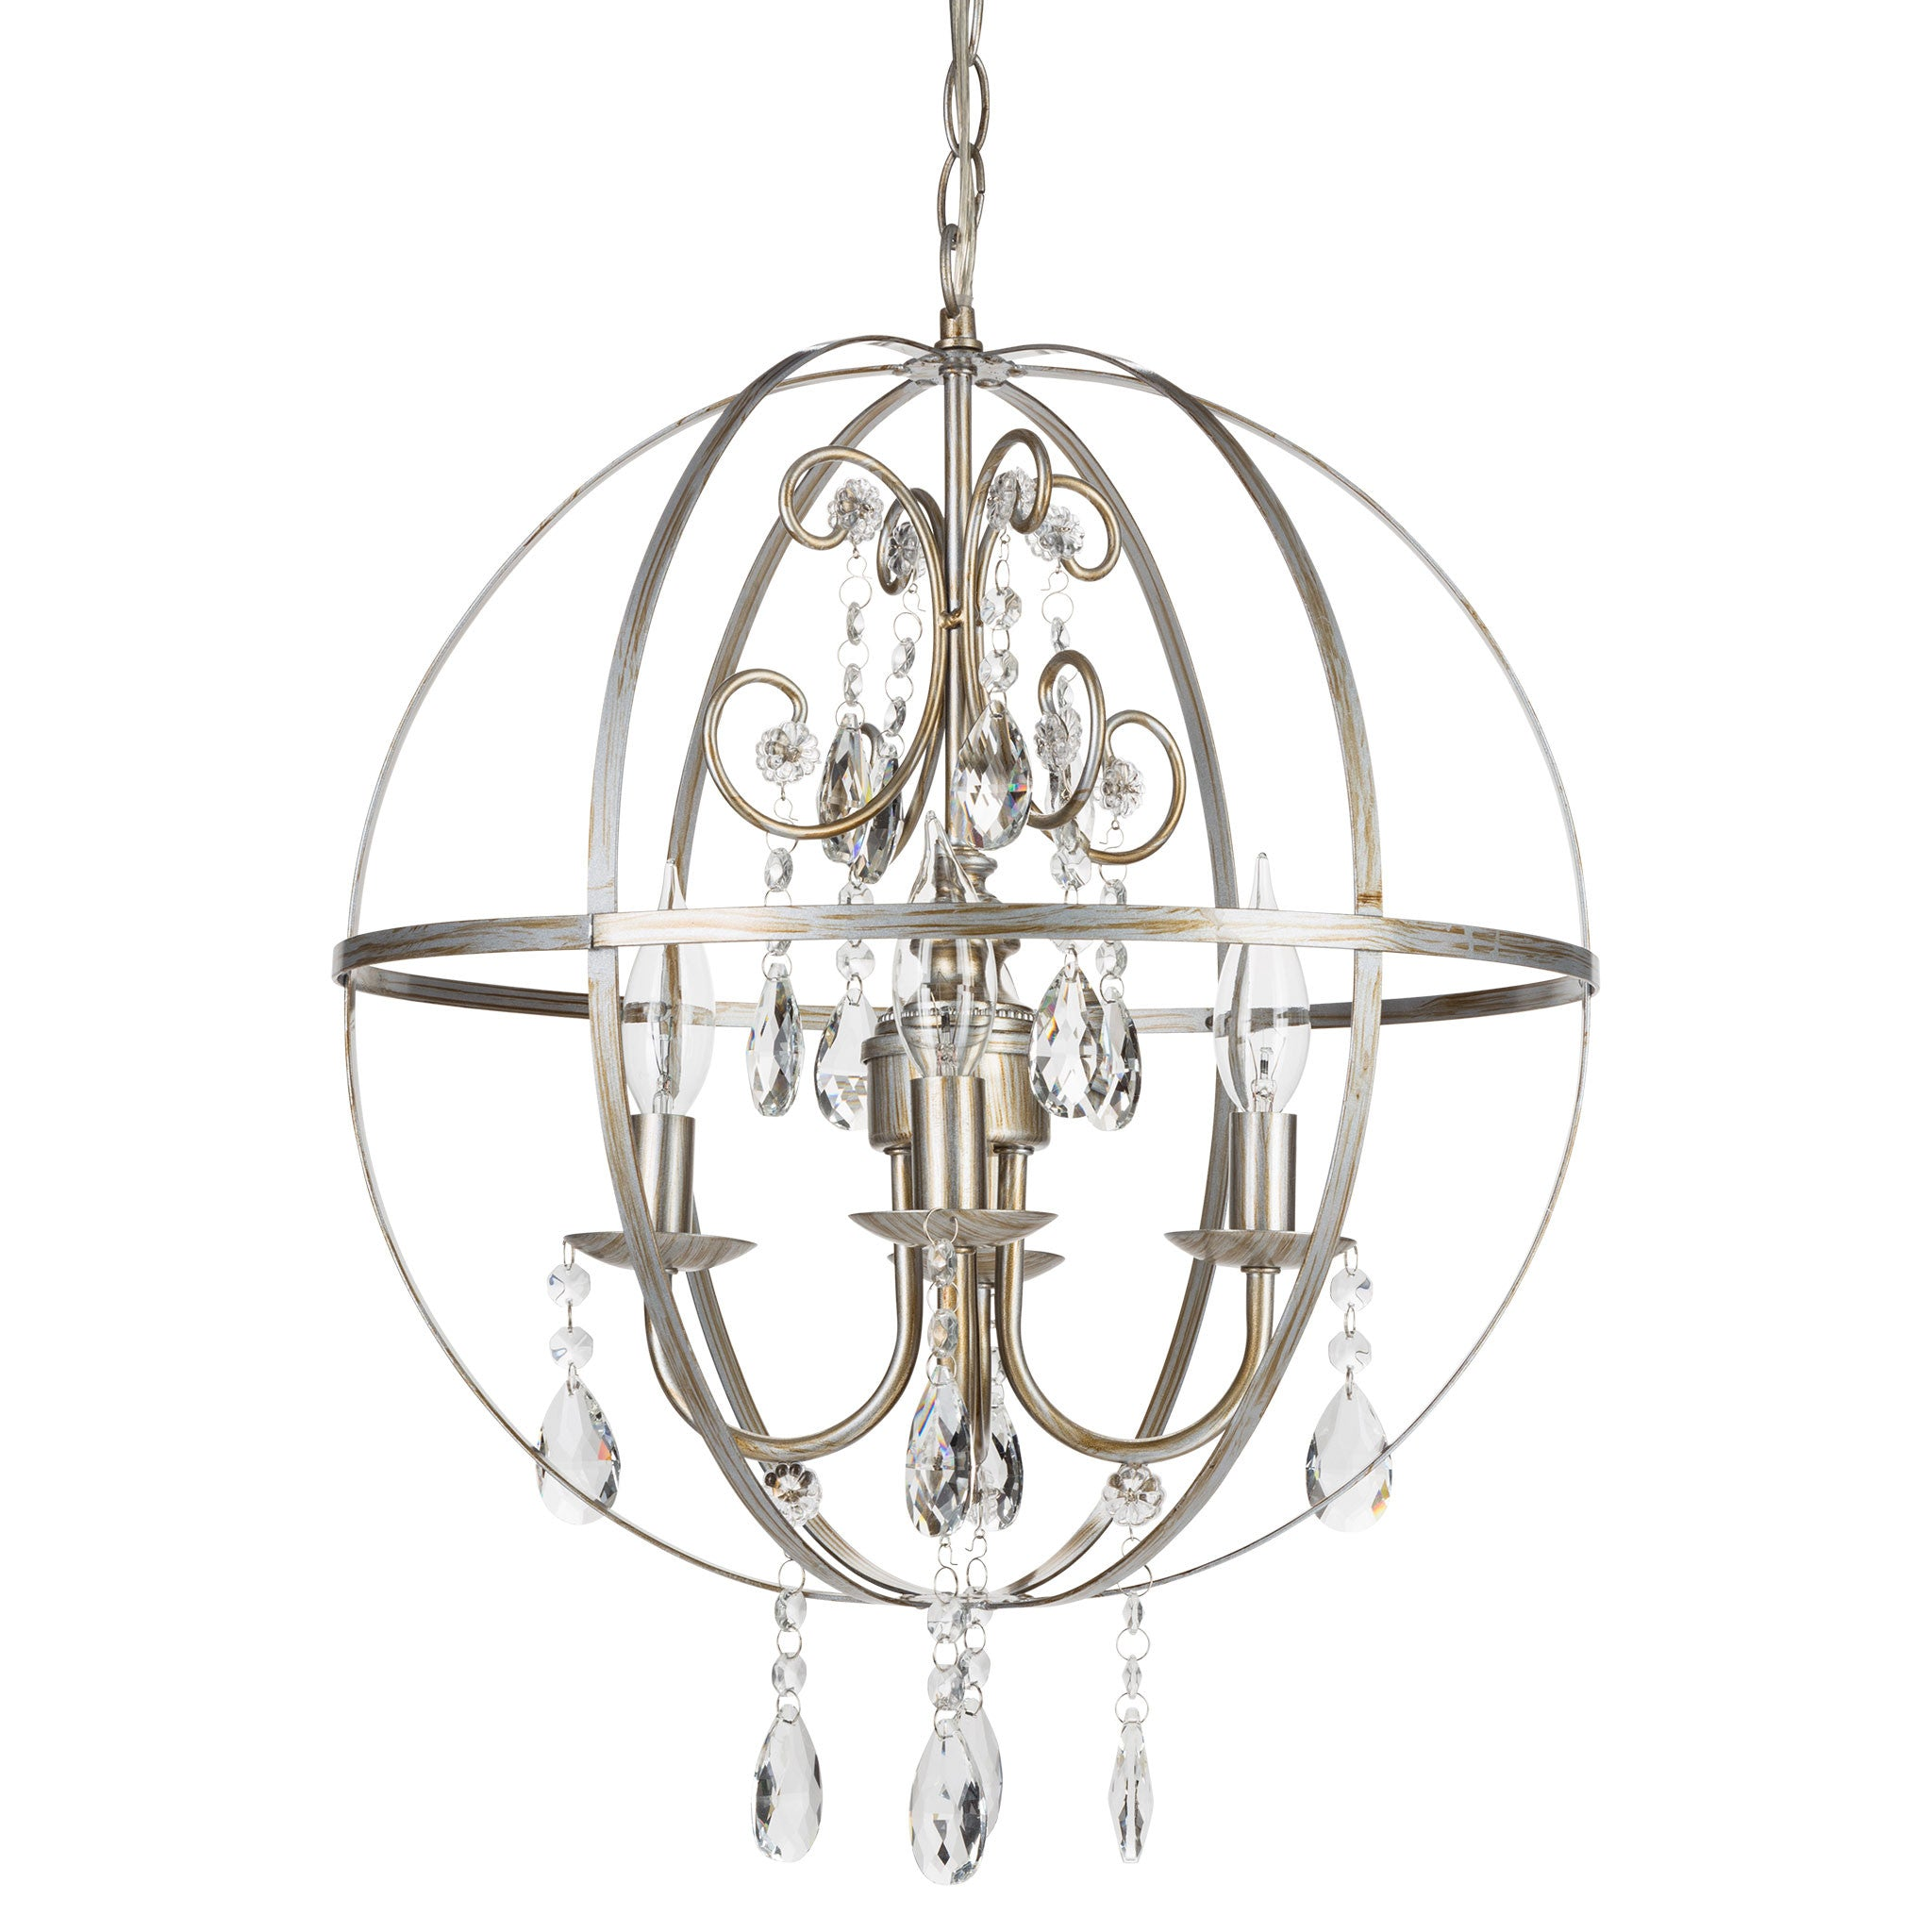 Amalfi Decor 4 Light Contemporary Crystal Orb Plug-In Chandelier (Silver) | Wrought Iron Frame with Glass Crystals